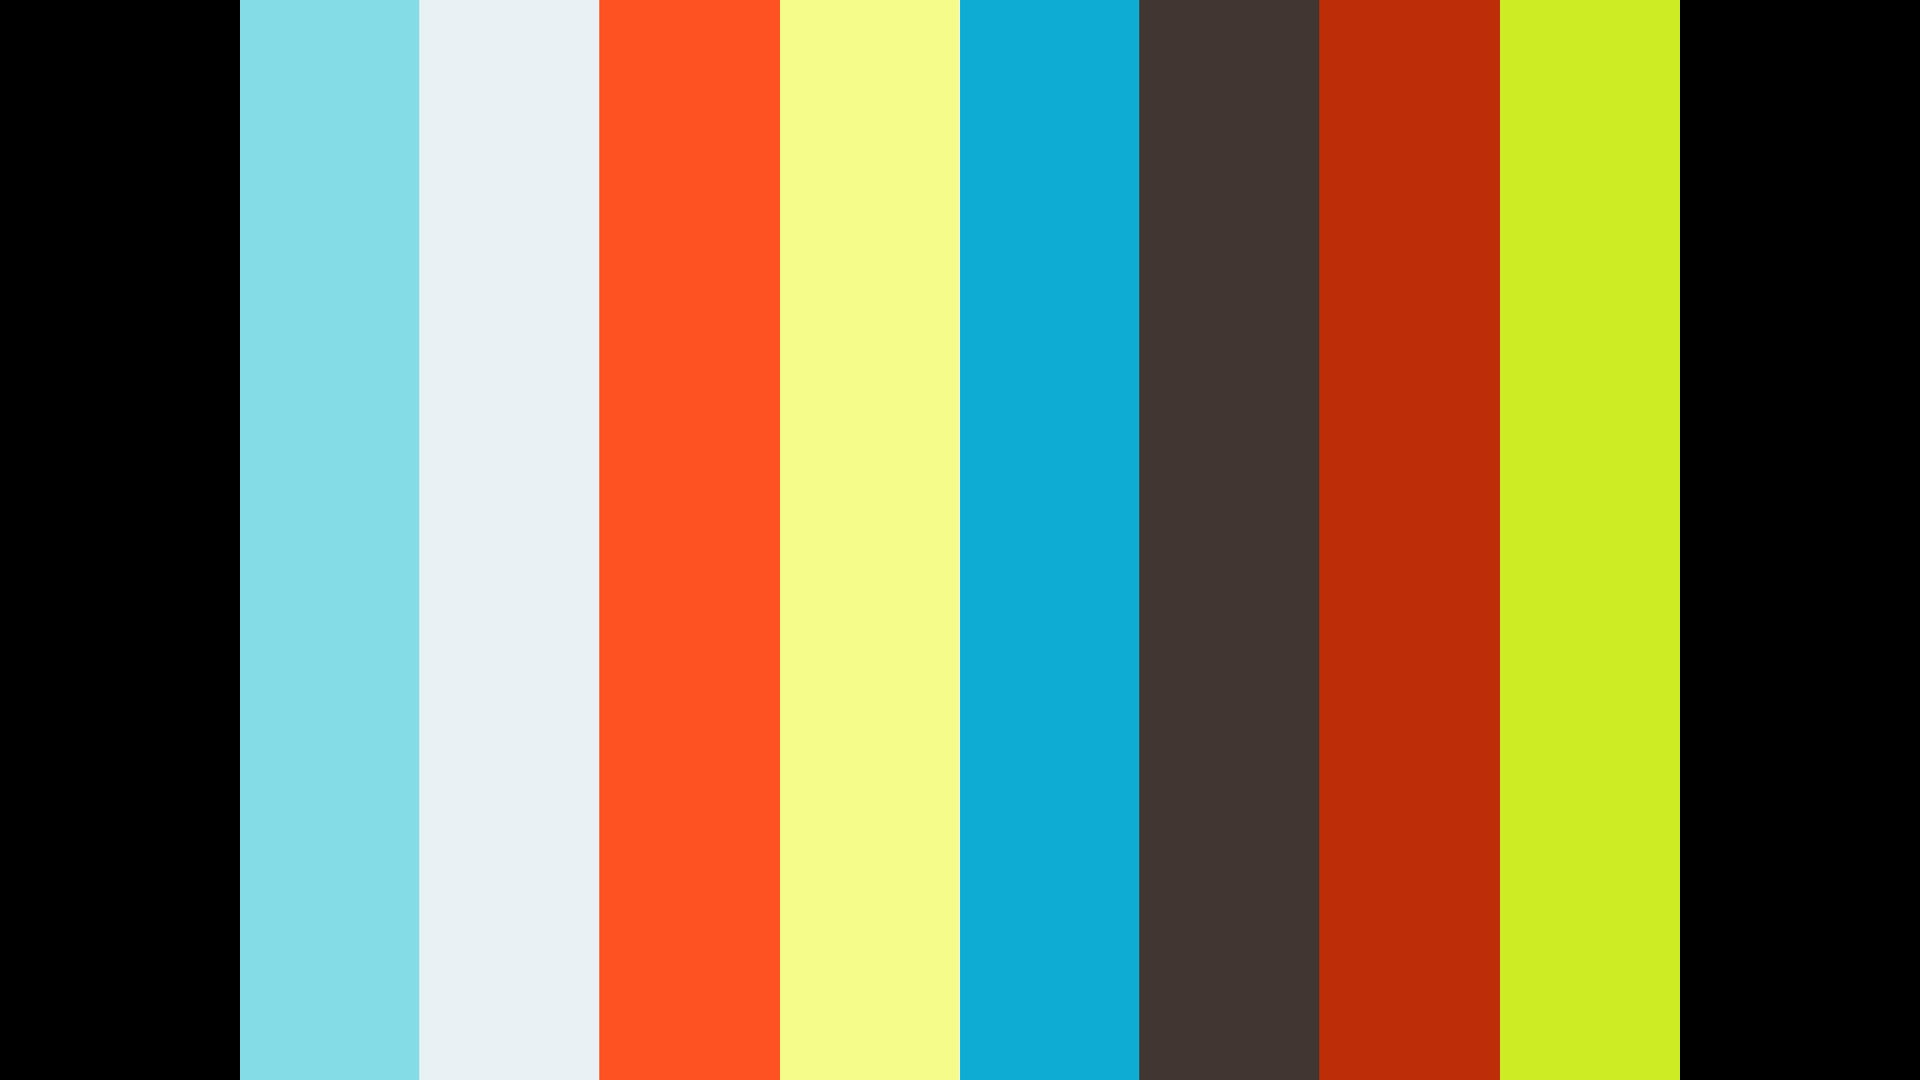 Musclemania Australia - Sept 18 - Gold Coast